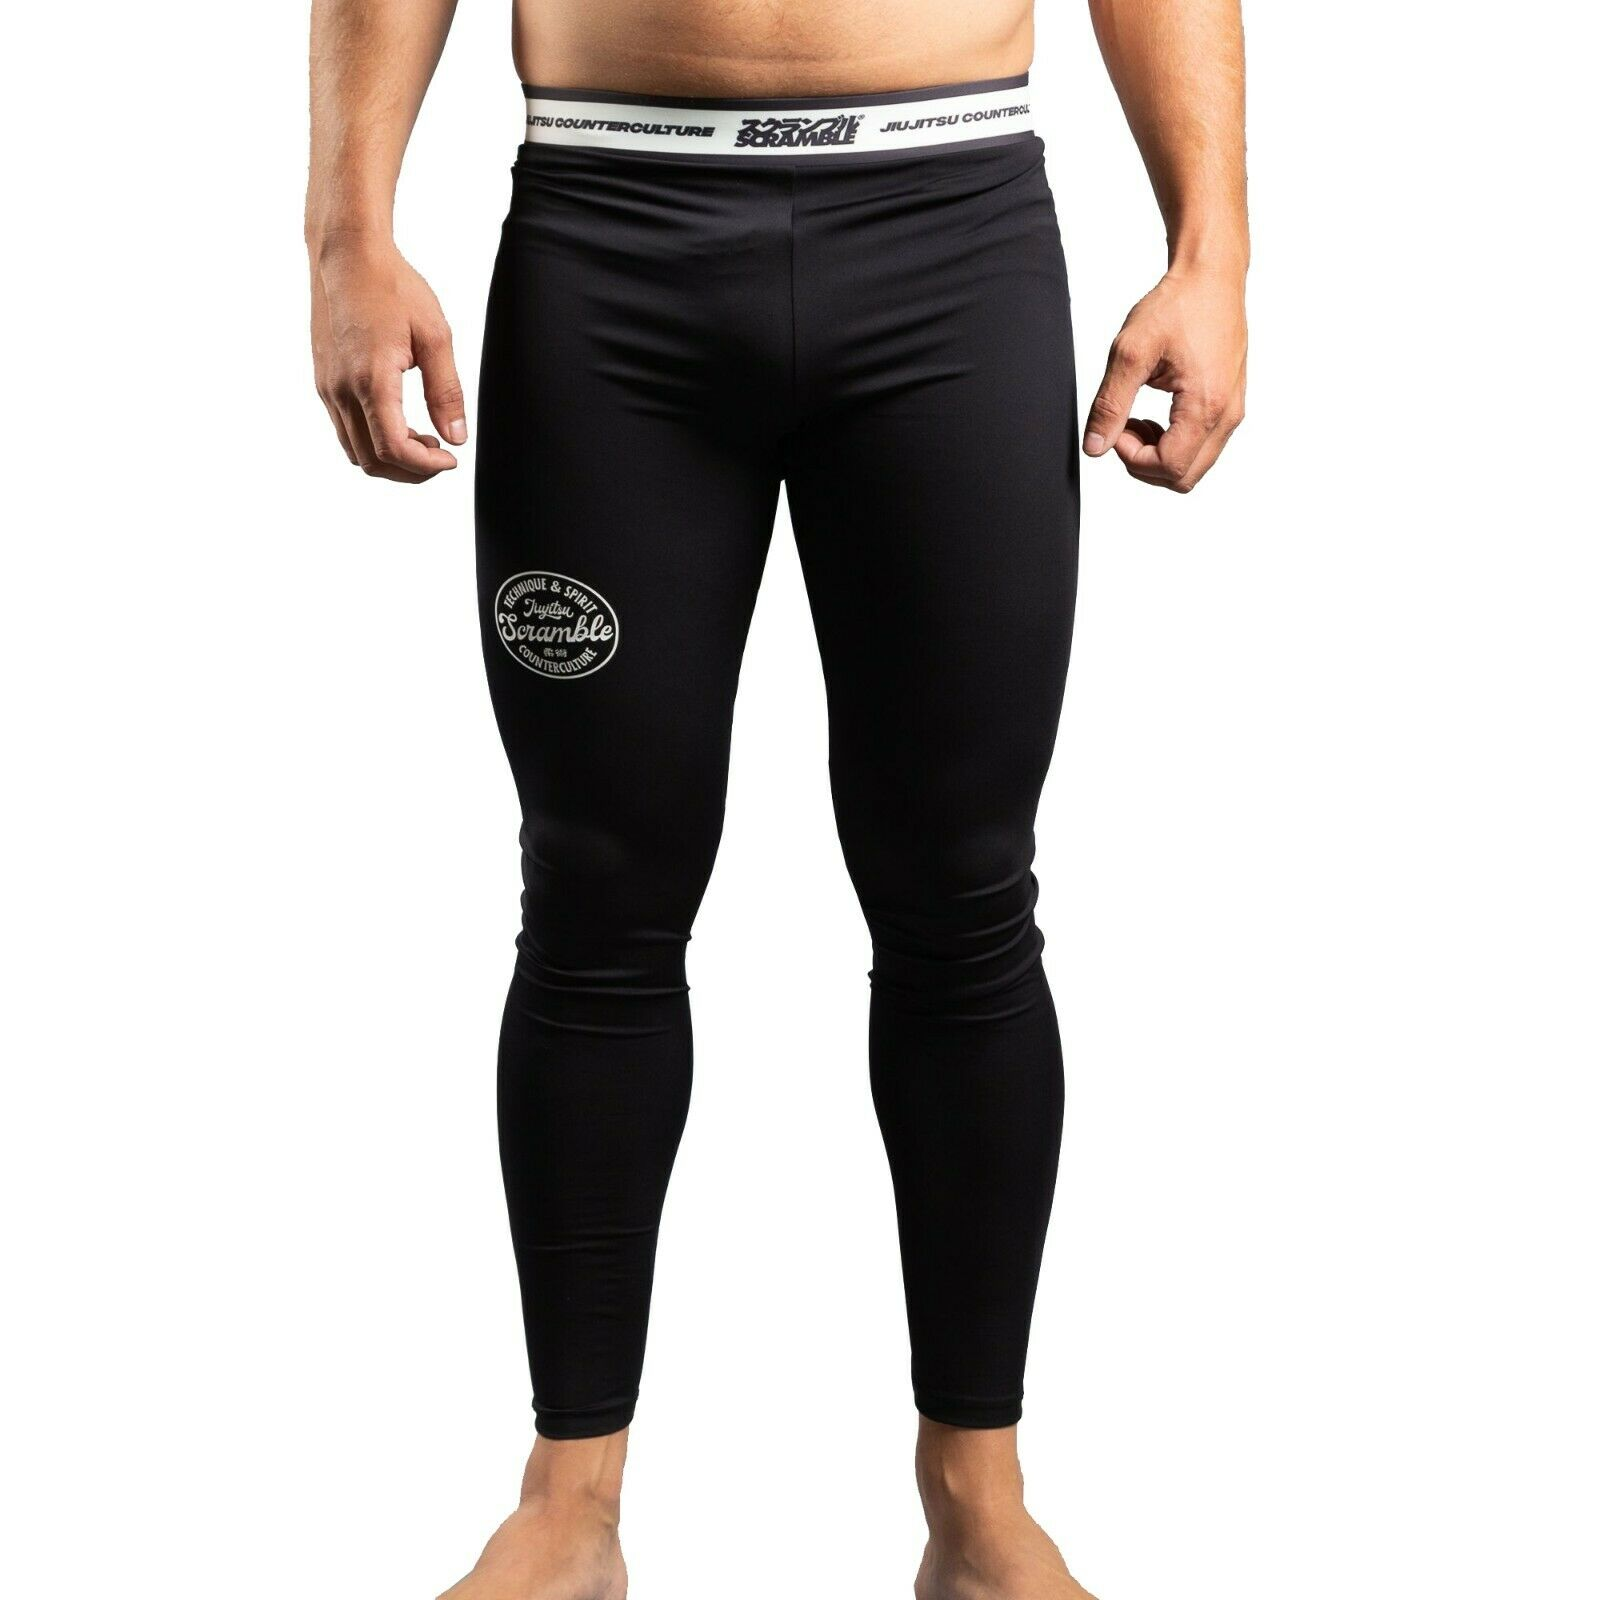 Scramble Nero Ghette V4 Collant No Gi Jiu Jitsu Brasiliano Grappling Mma Bjj